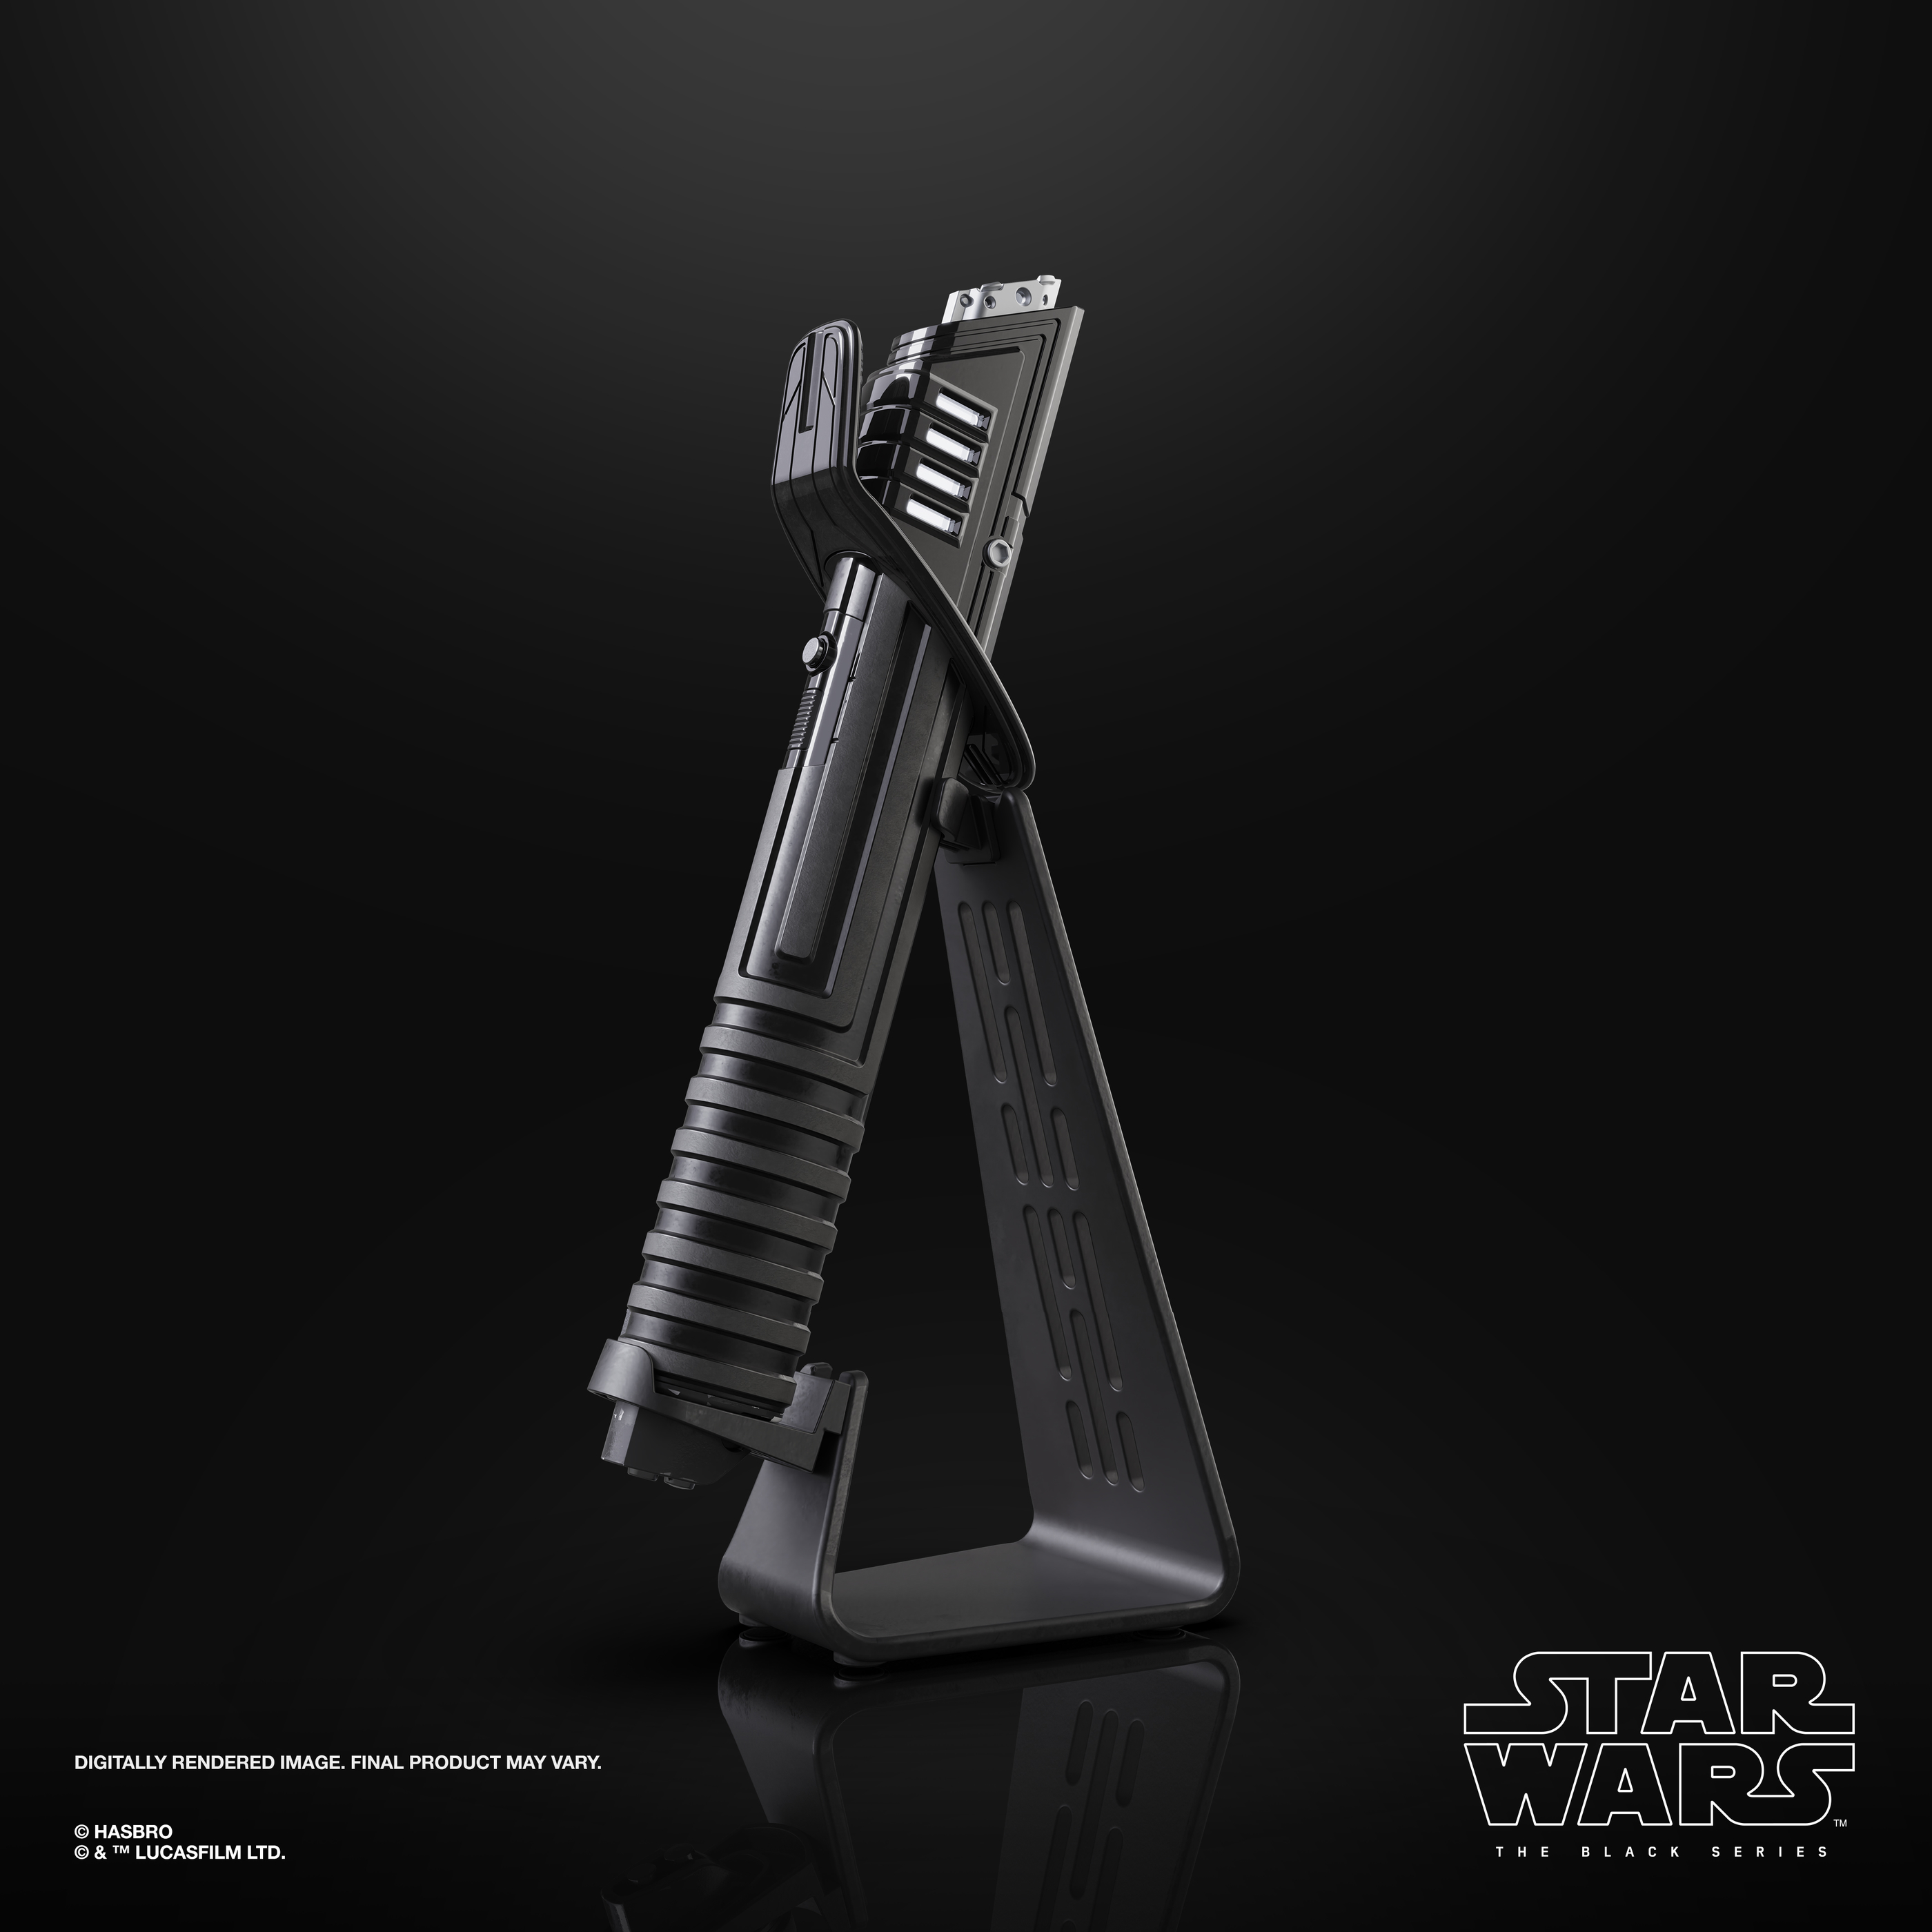 Star Wars The Black Series - The Mandalorian - Mandalorian Darksaber Force FX Elite Lightsaber